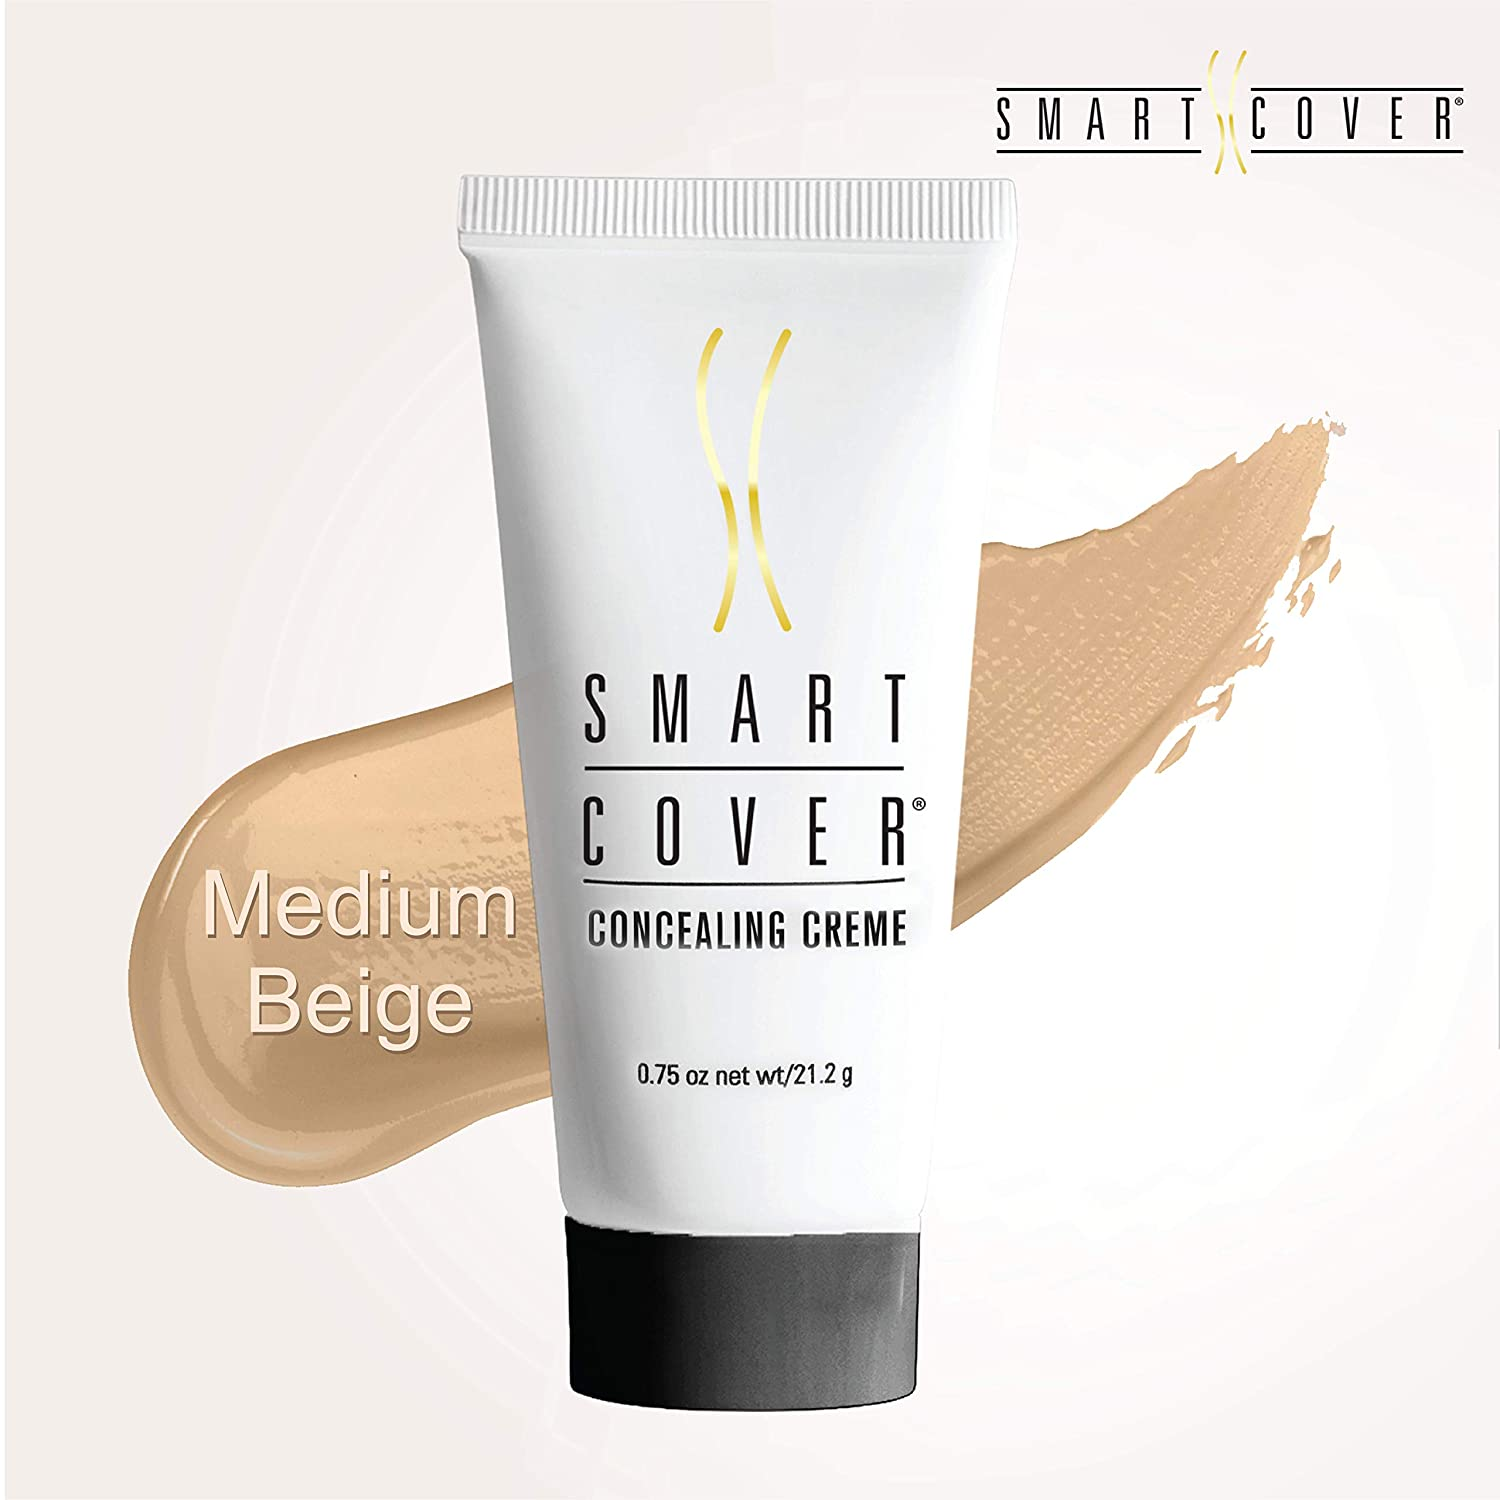 Smart Cover 0.8oz Concealer Cream For Medium Beige Skin Tones, Dries Matte, No Setting Powder Needed. Instantly Covers Dark Eye Circles, Scars, Birthmarks, Blemishes, Age Spots, Varicose Veins & More